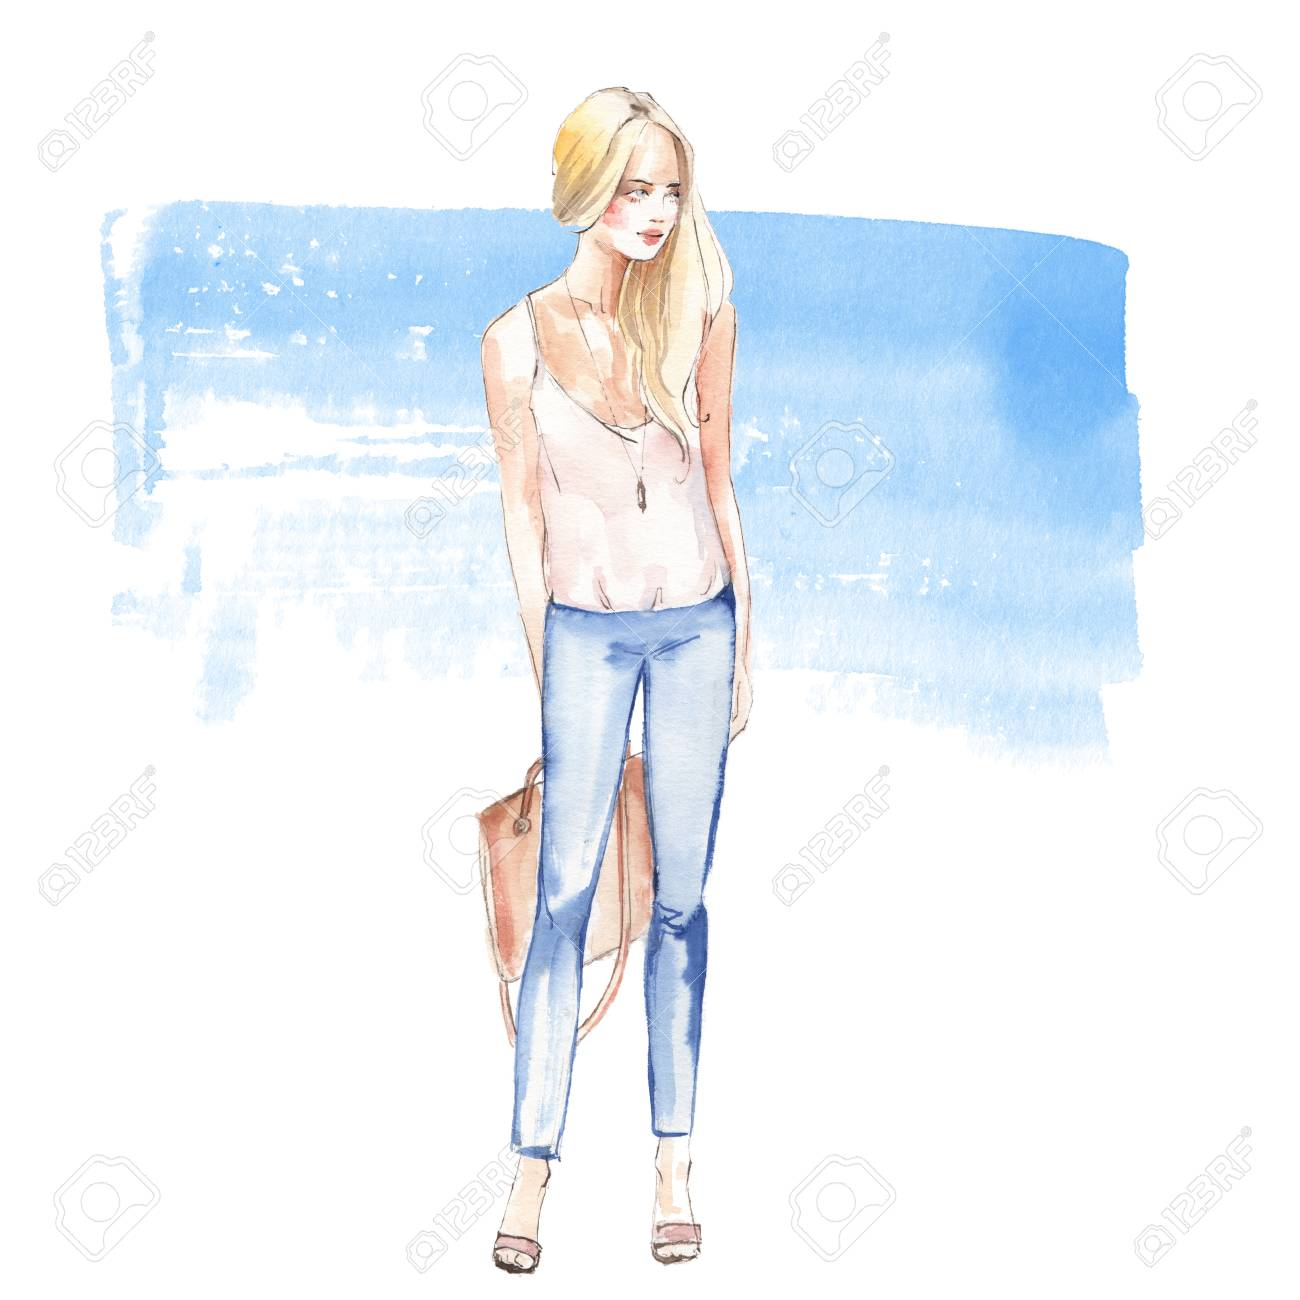 Watercolor fashion sketch full length girl on blue background hand painted illustration 2 stock